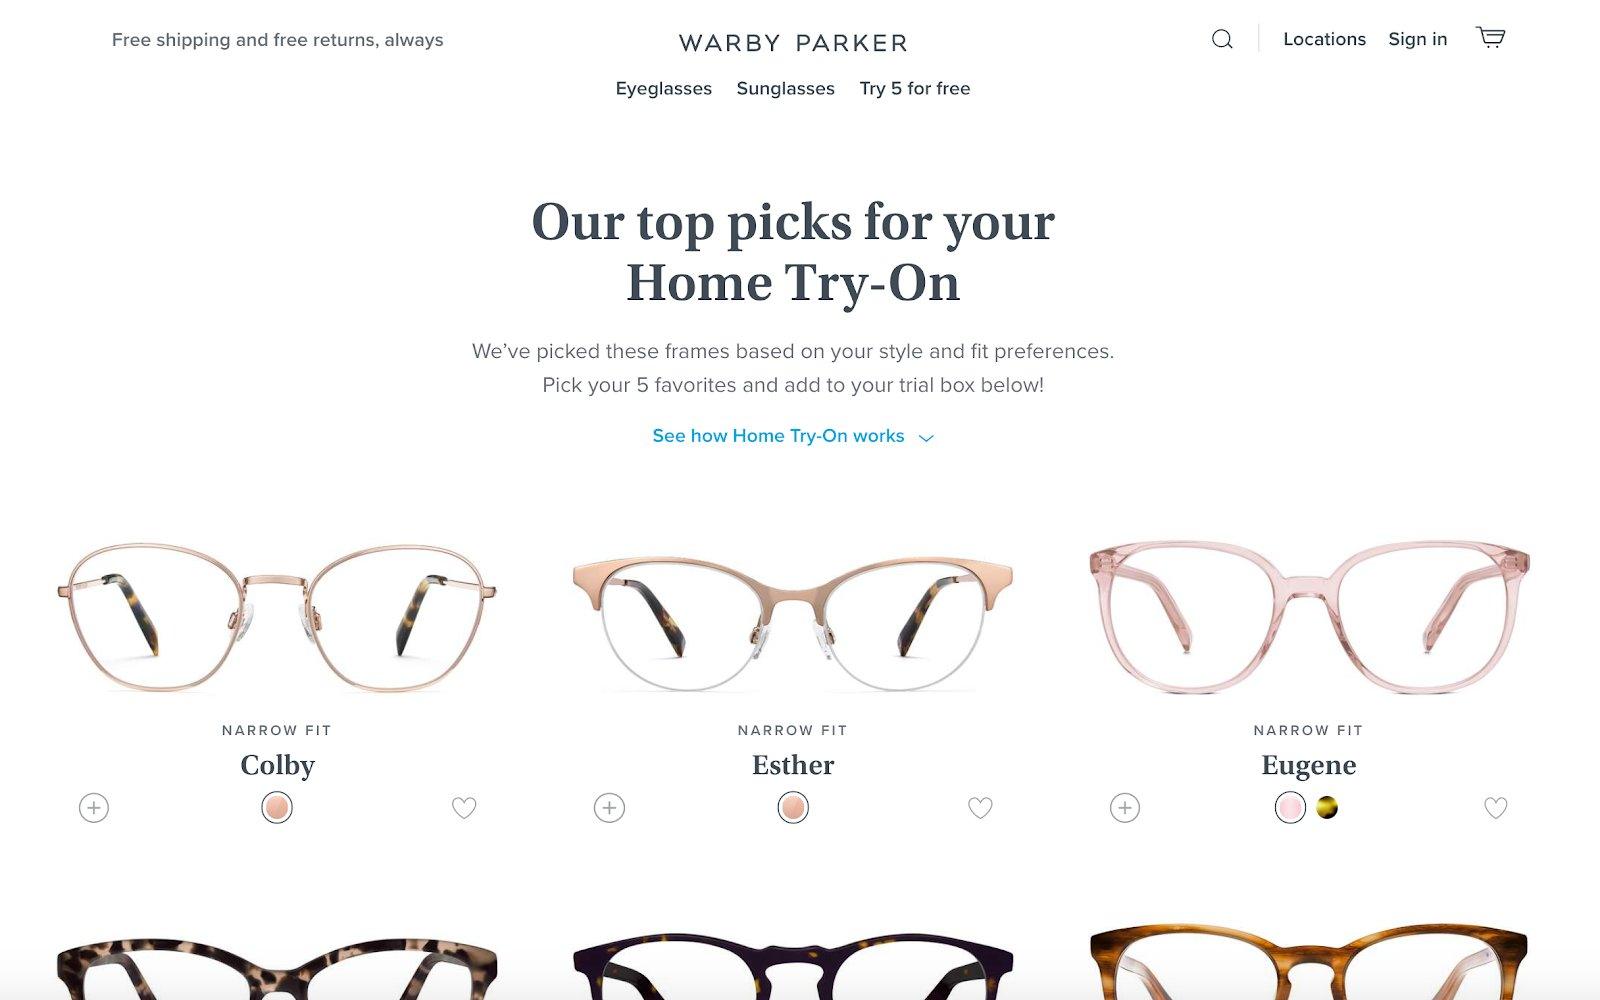 a curated selection of products on warbyparker.com